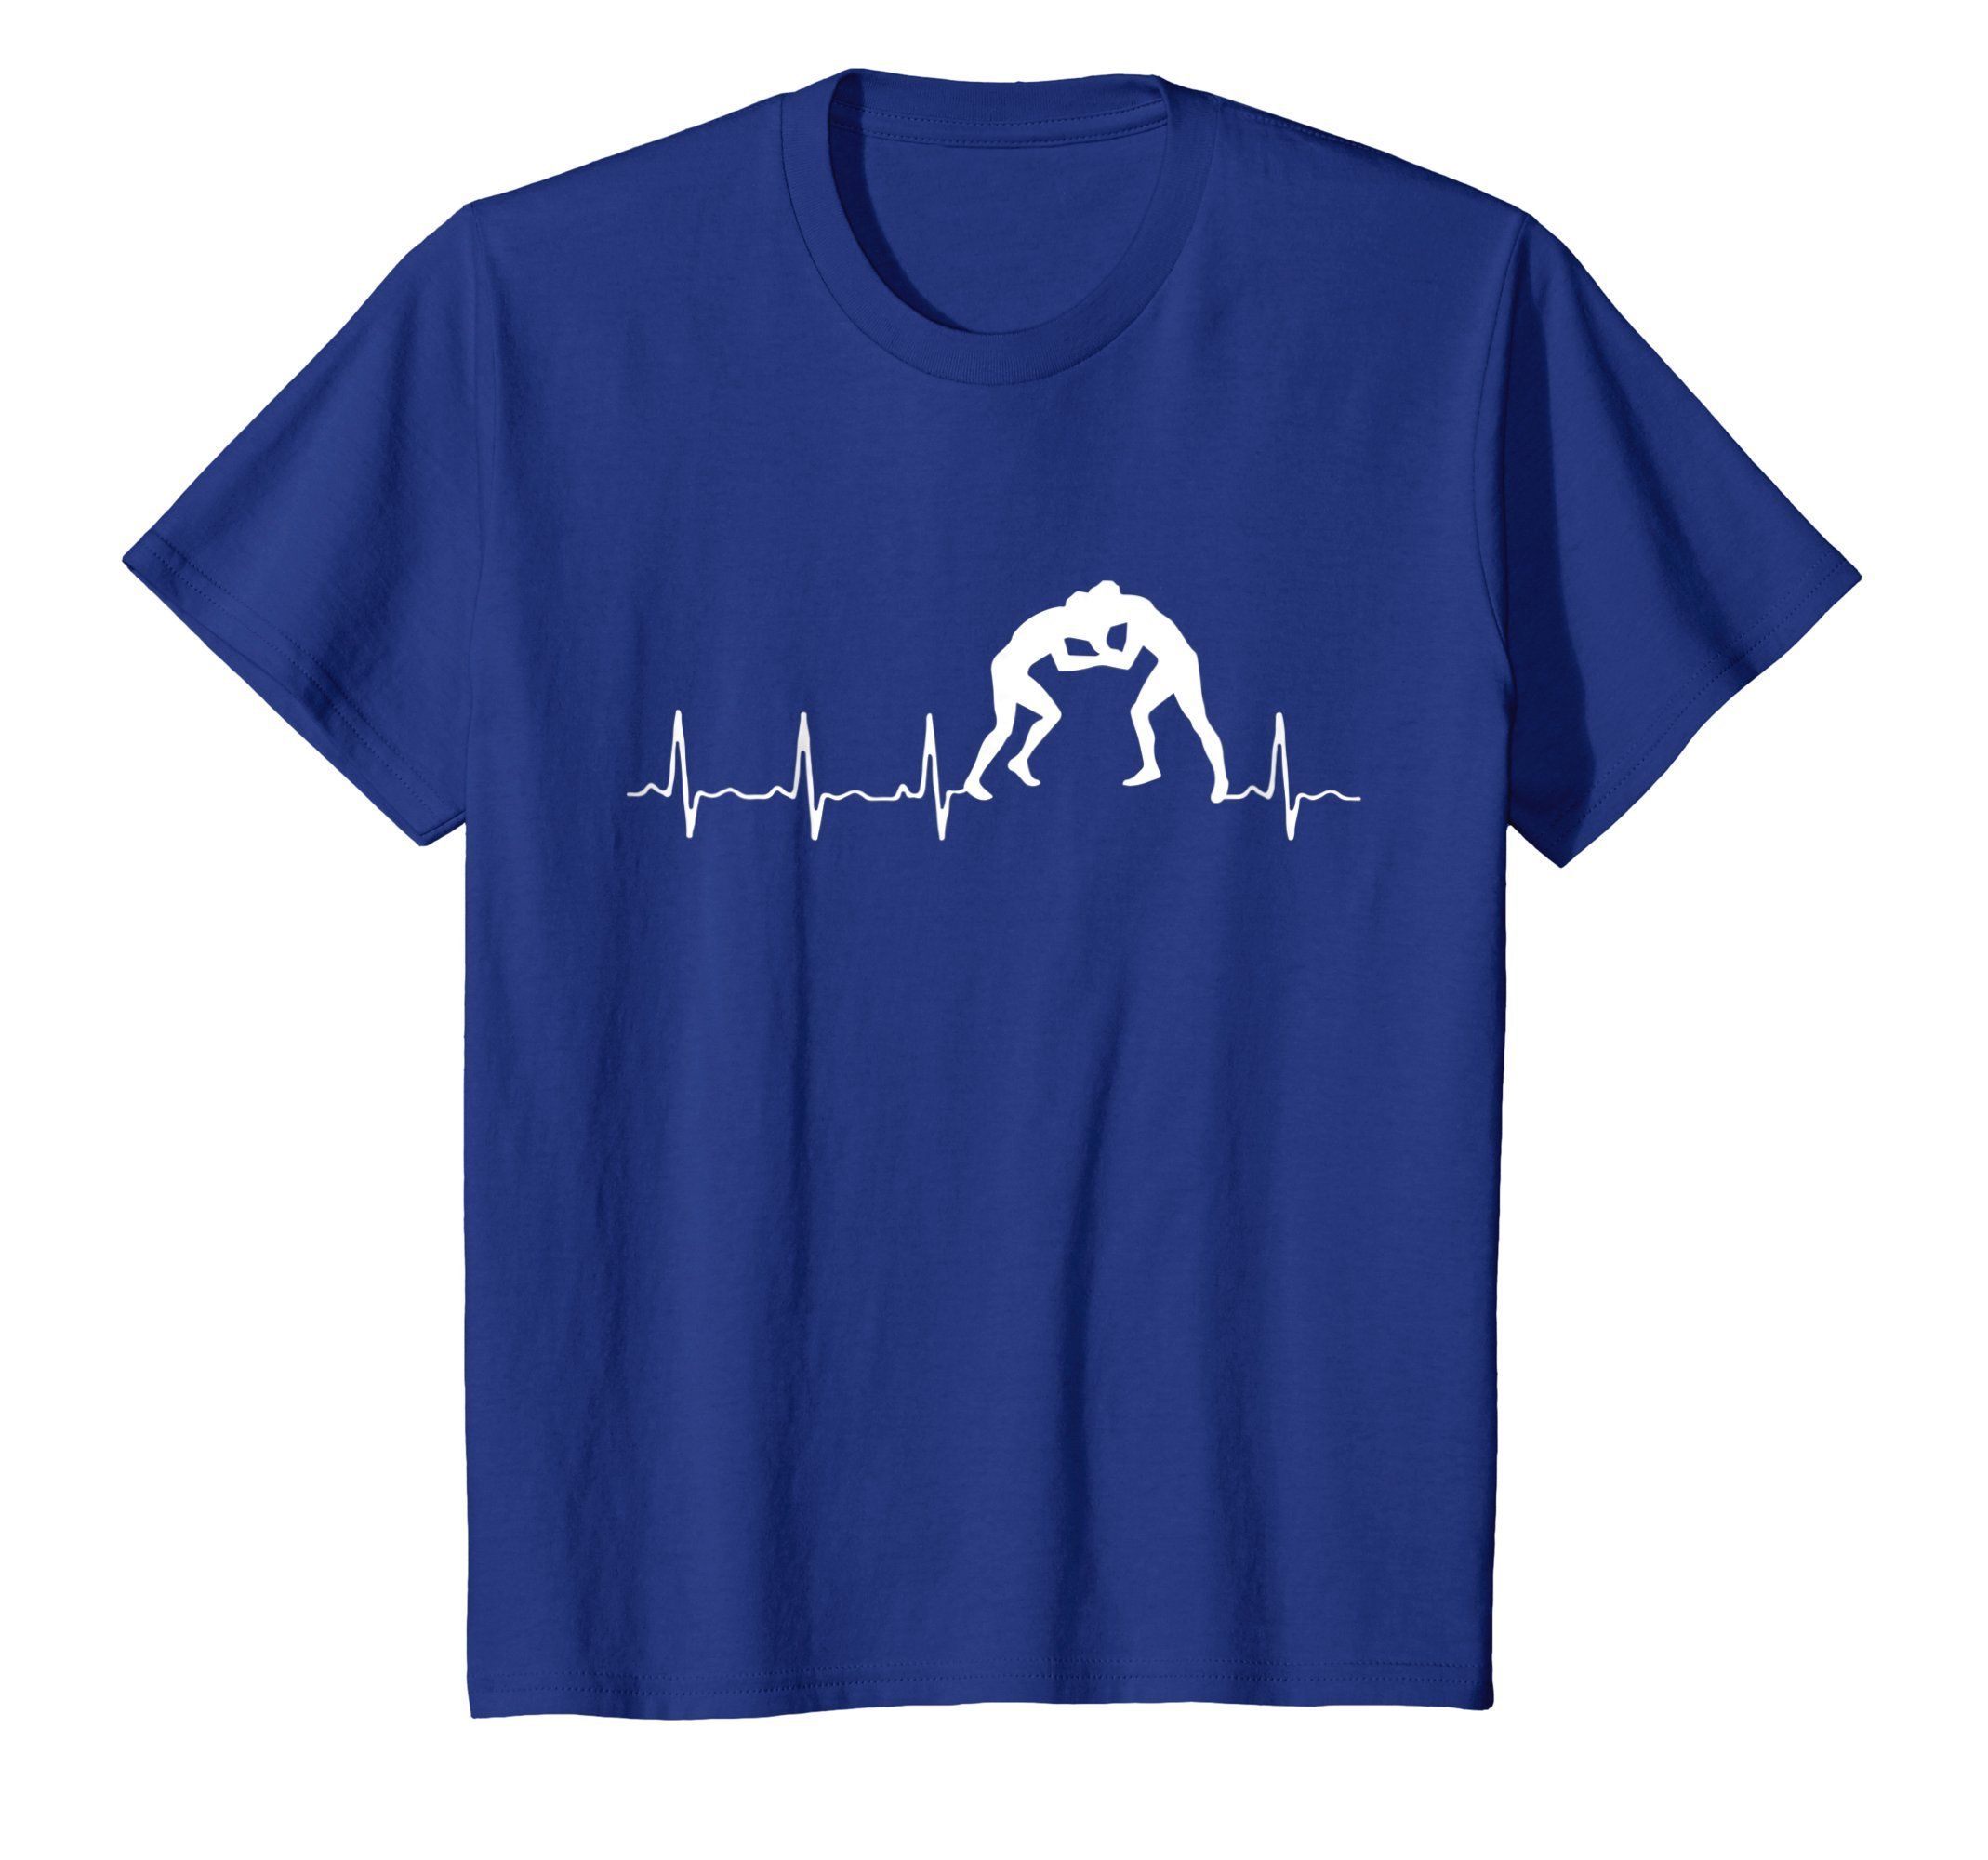 Kids Wrestling Apparel - Heartbeat T-shirt for Moms, Coaches 12 Royal Blue by Wrestling Apparel Store